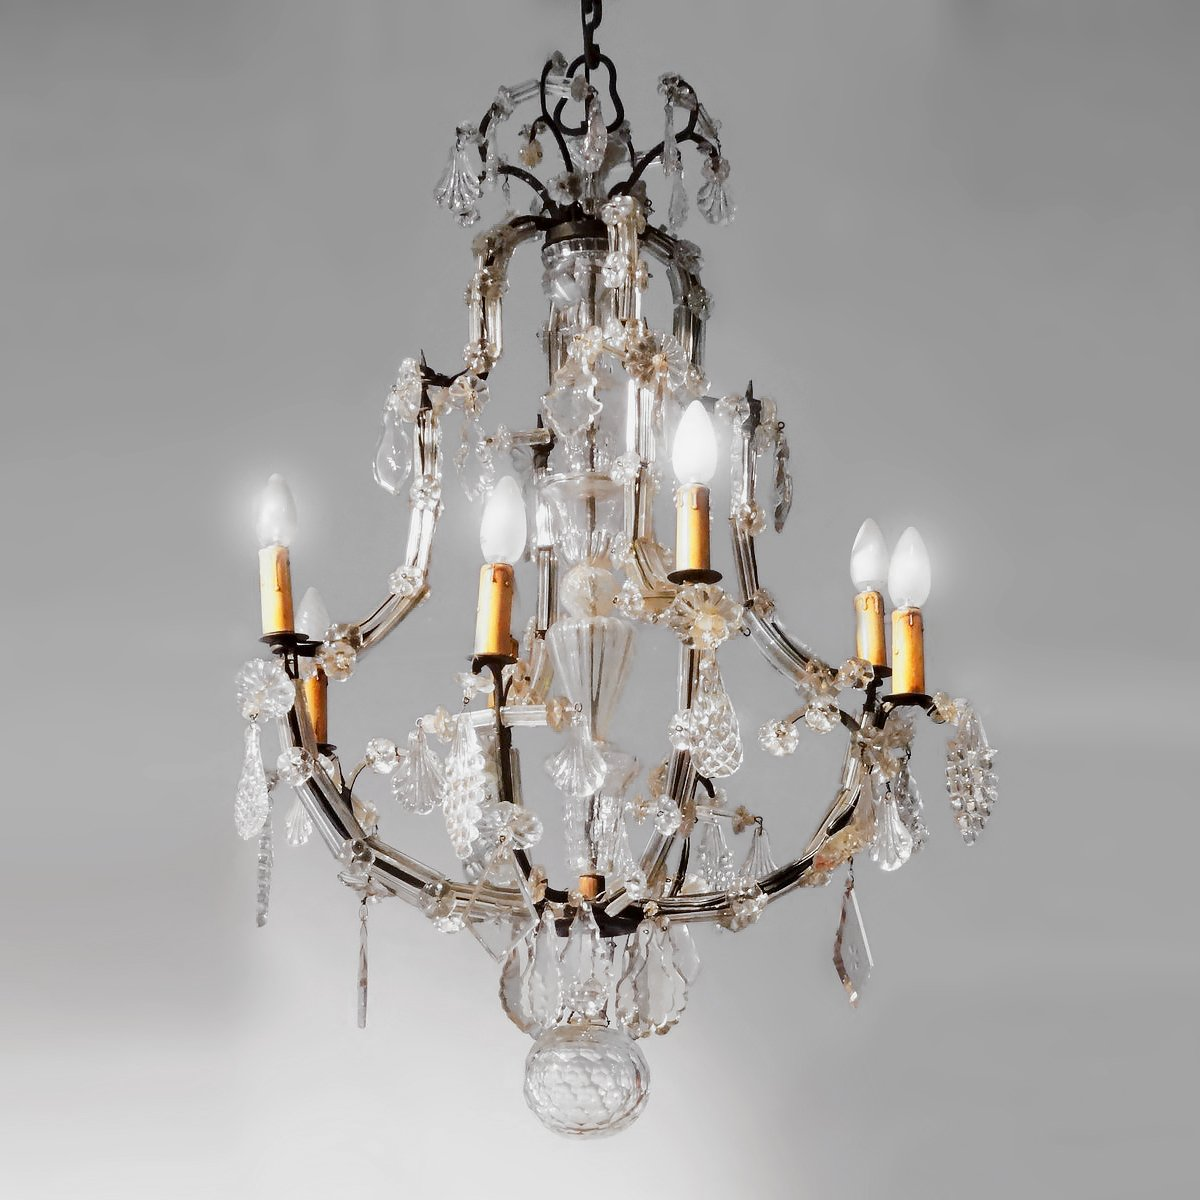 Crystal Chandelier And Wrought Iron From The Late 18th Century